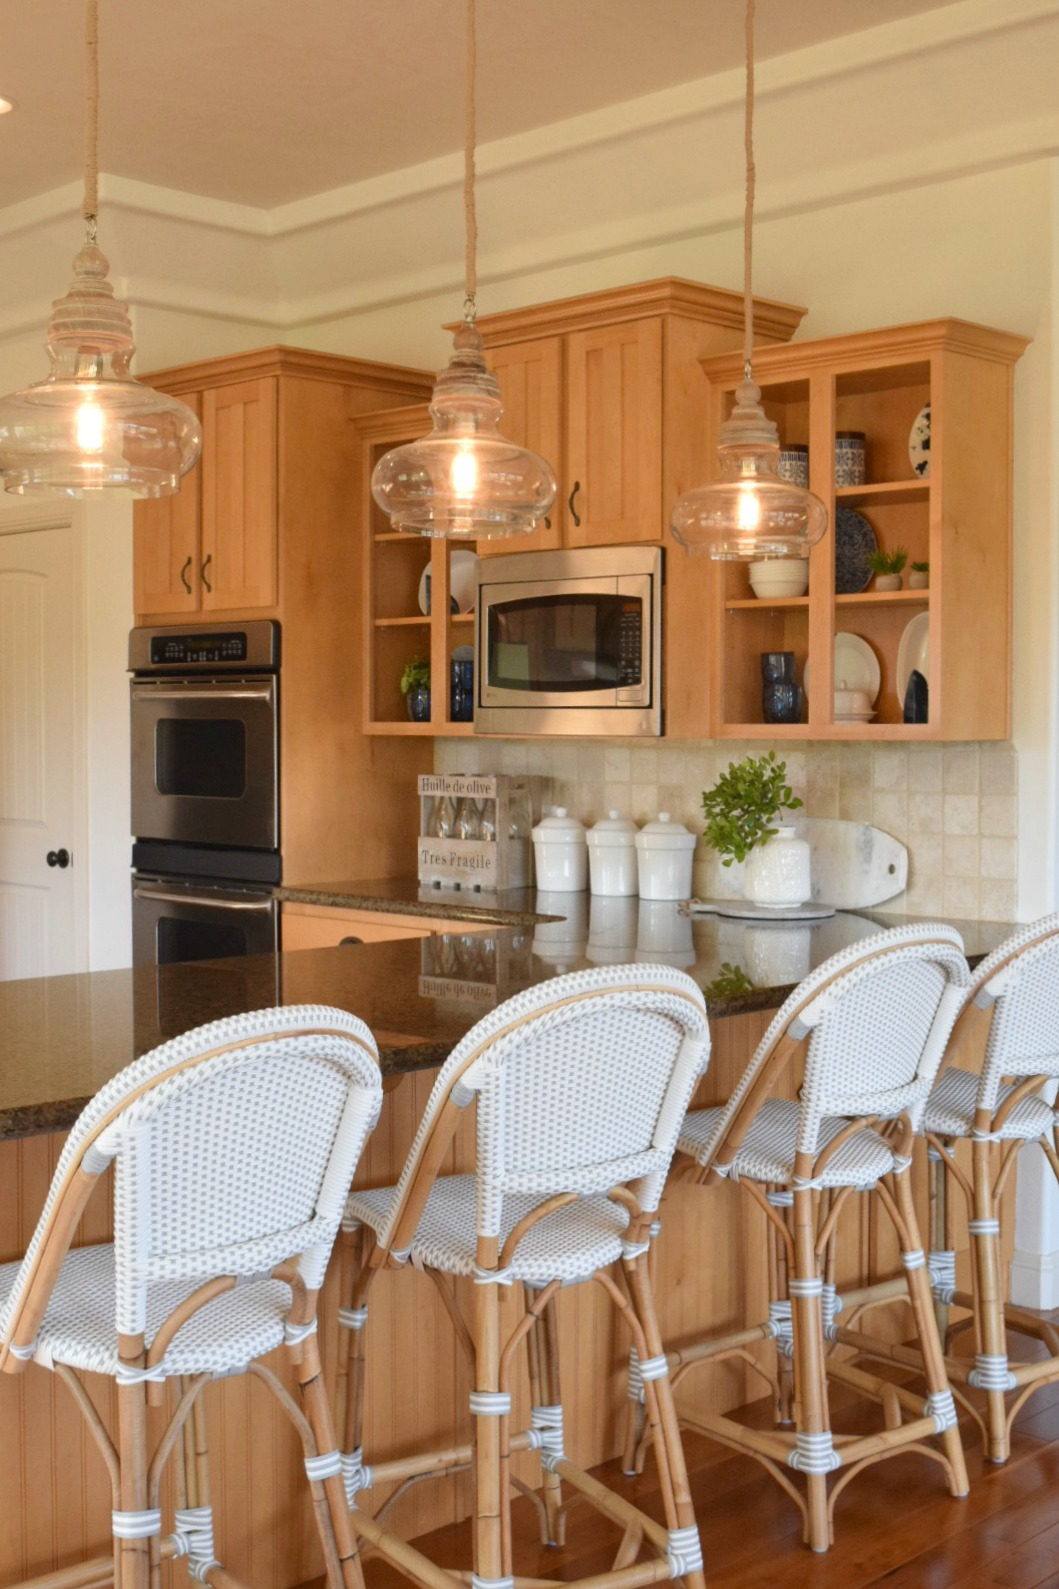 Benjamin Moore Simply White: Modern Home Refresh With Simply White Paint